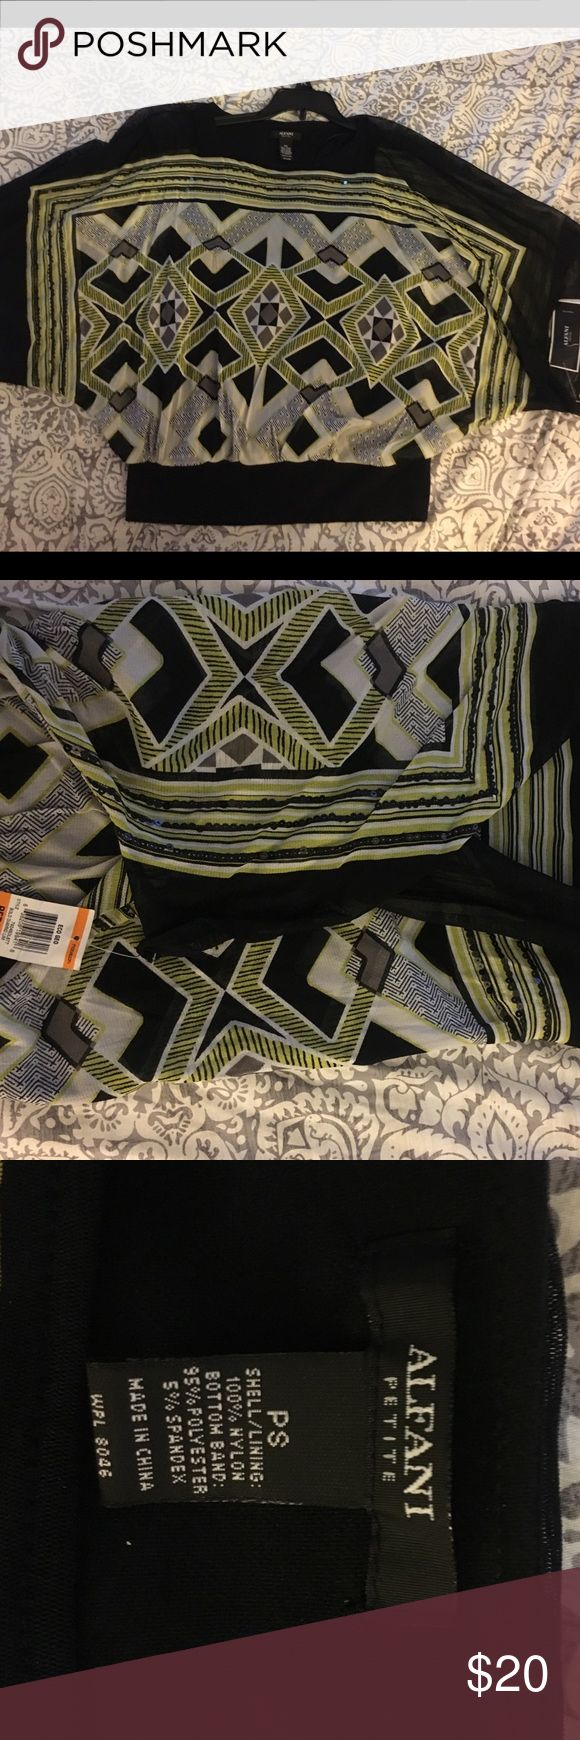 Macy's Dolman top NWT size small petite Alfani brand dolman aztec print dolman short sleeve top. Dress down with jeans or dress up with a black skirt. Alfani Tops Blouses